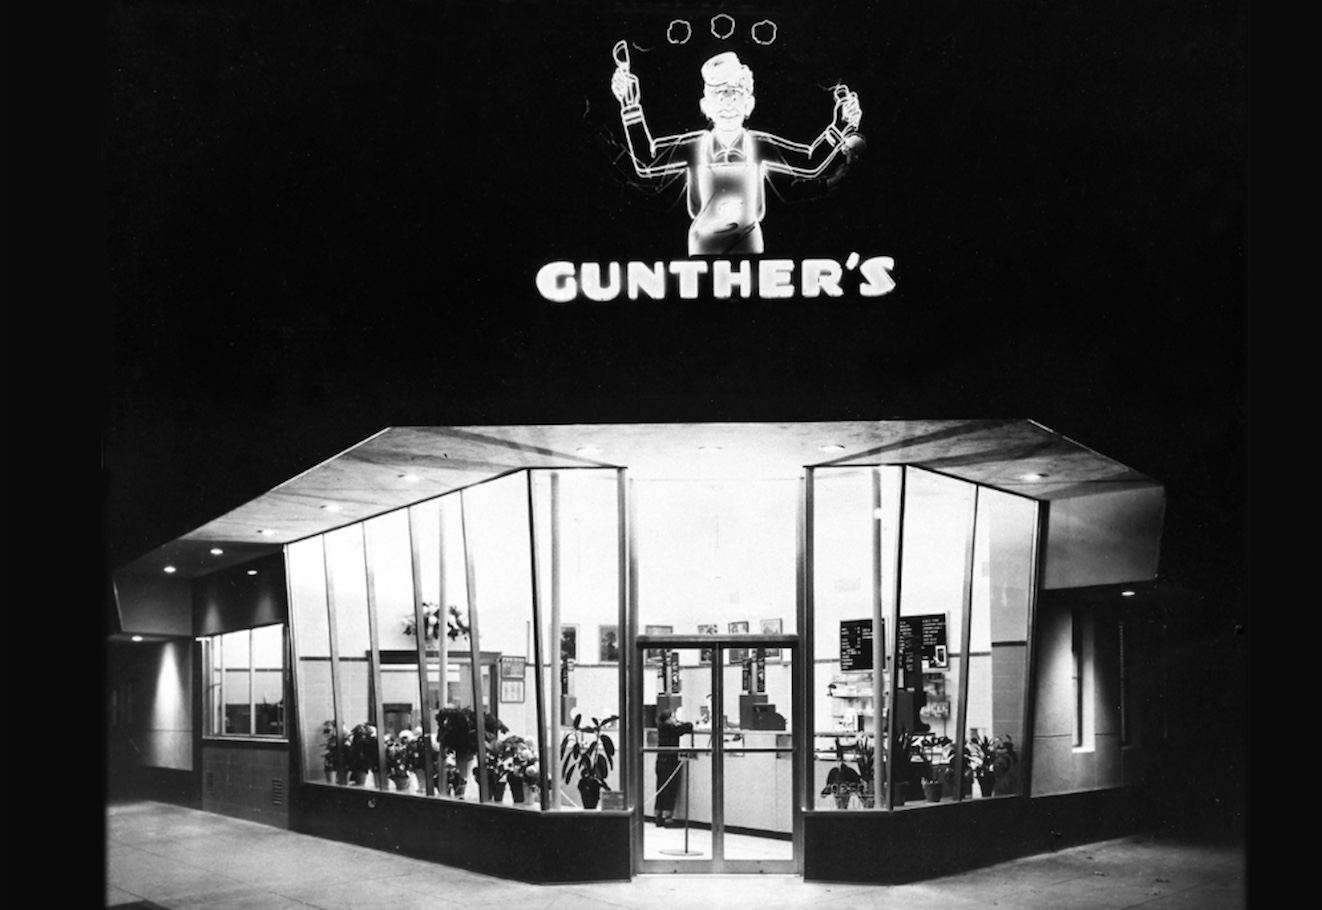 The beloved Gunther's ice cream parlor with its iconic Jugglin' Joe sign (Photo courtesy of Gunther's Ice Cream)